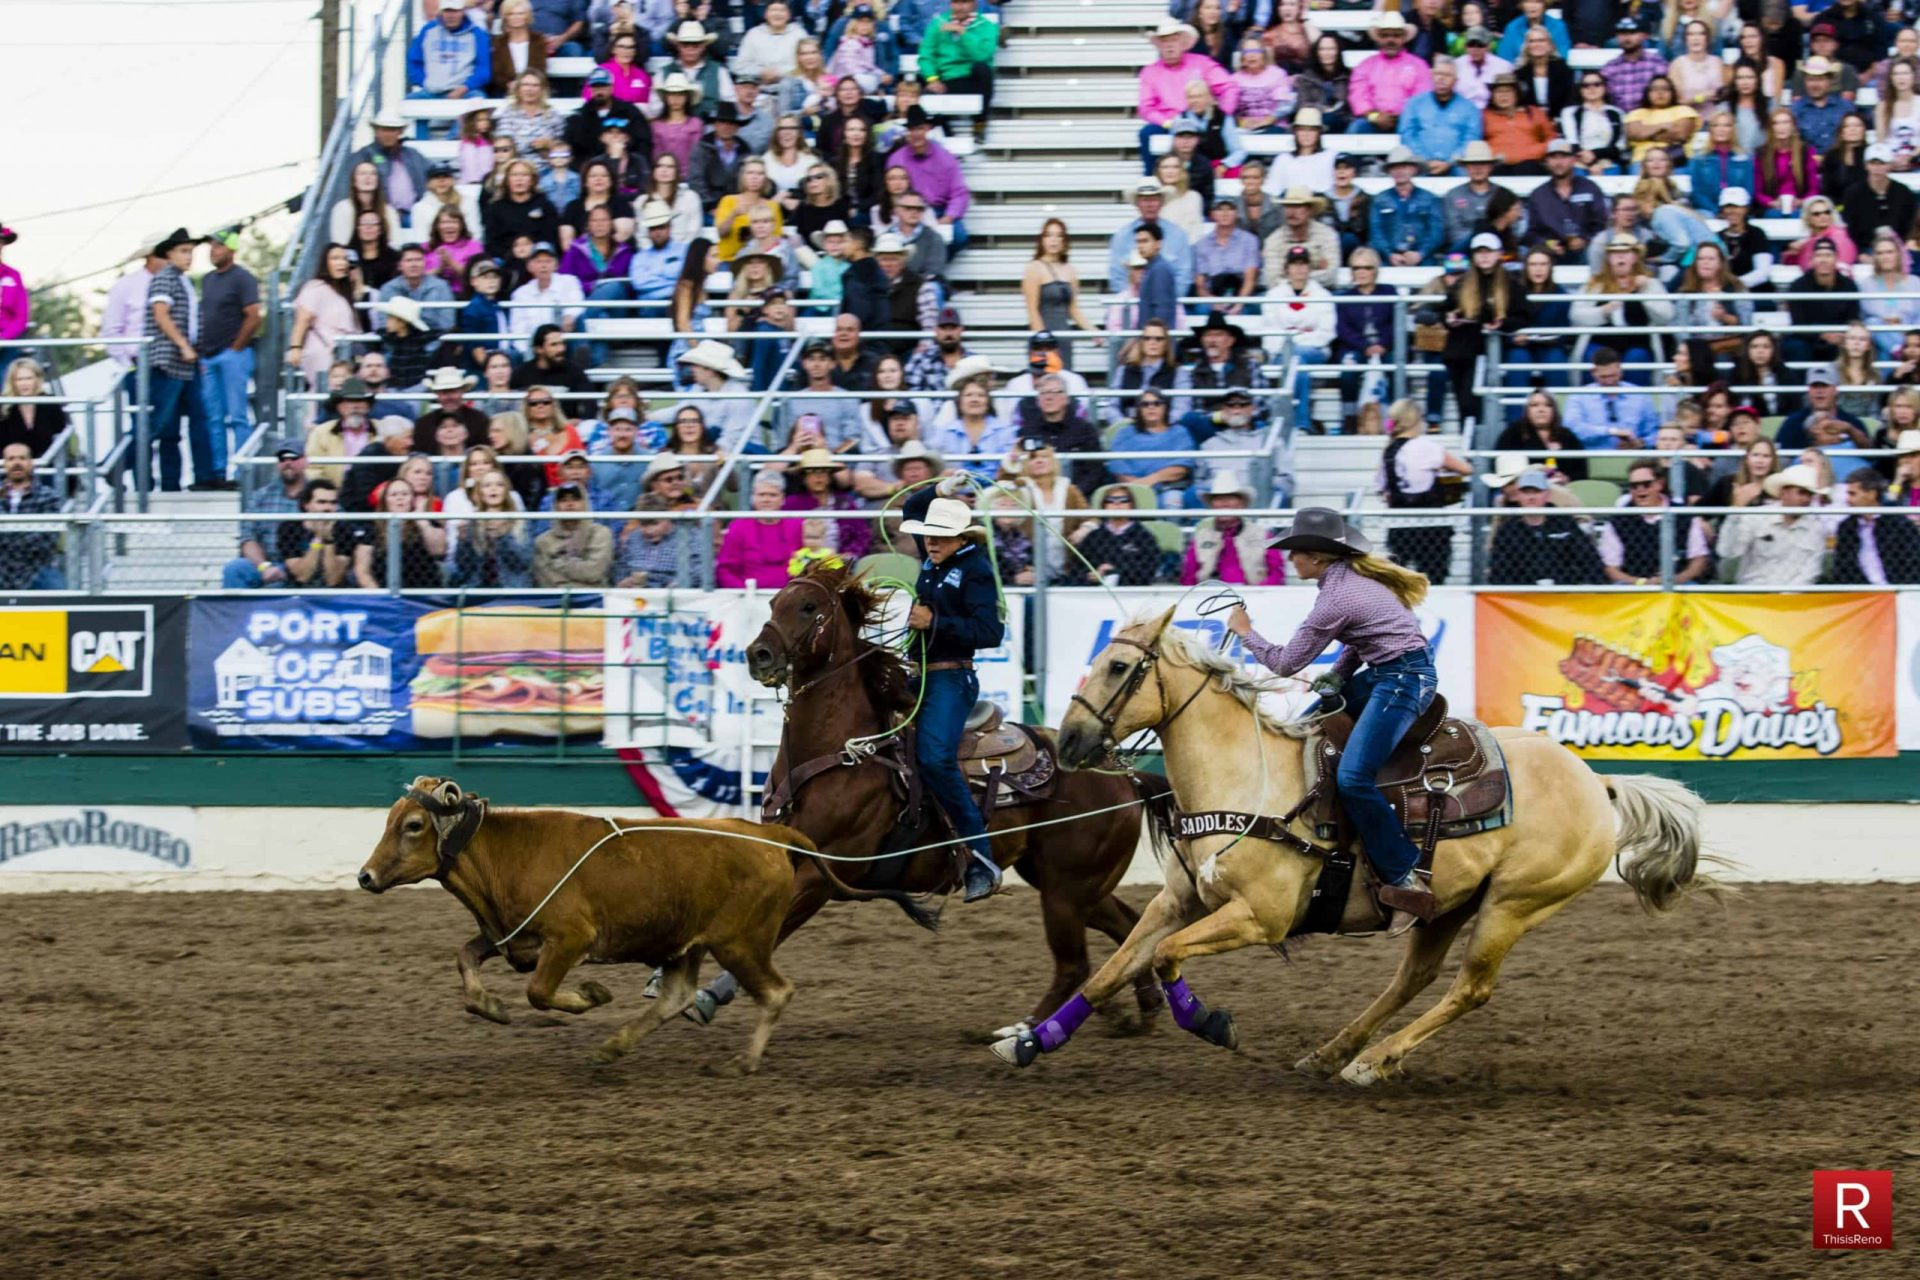 The 2019 Reno Rodeo. Image: Ty O'Neil